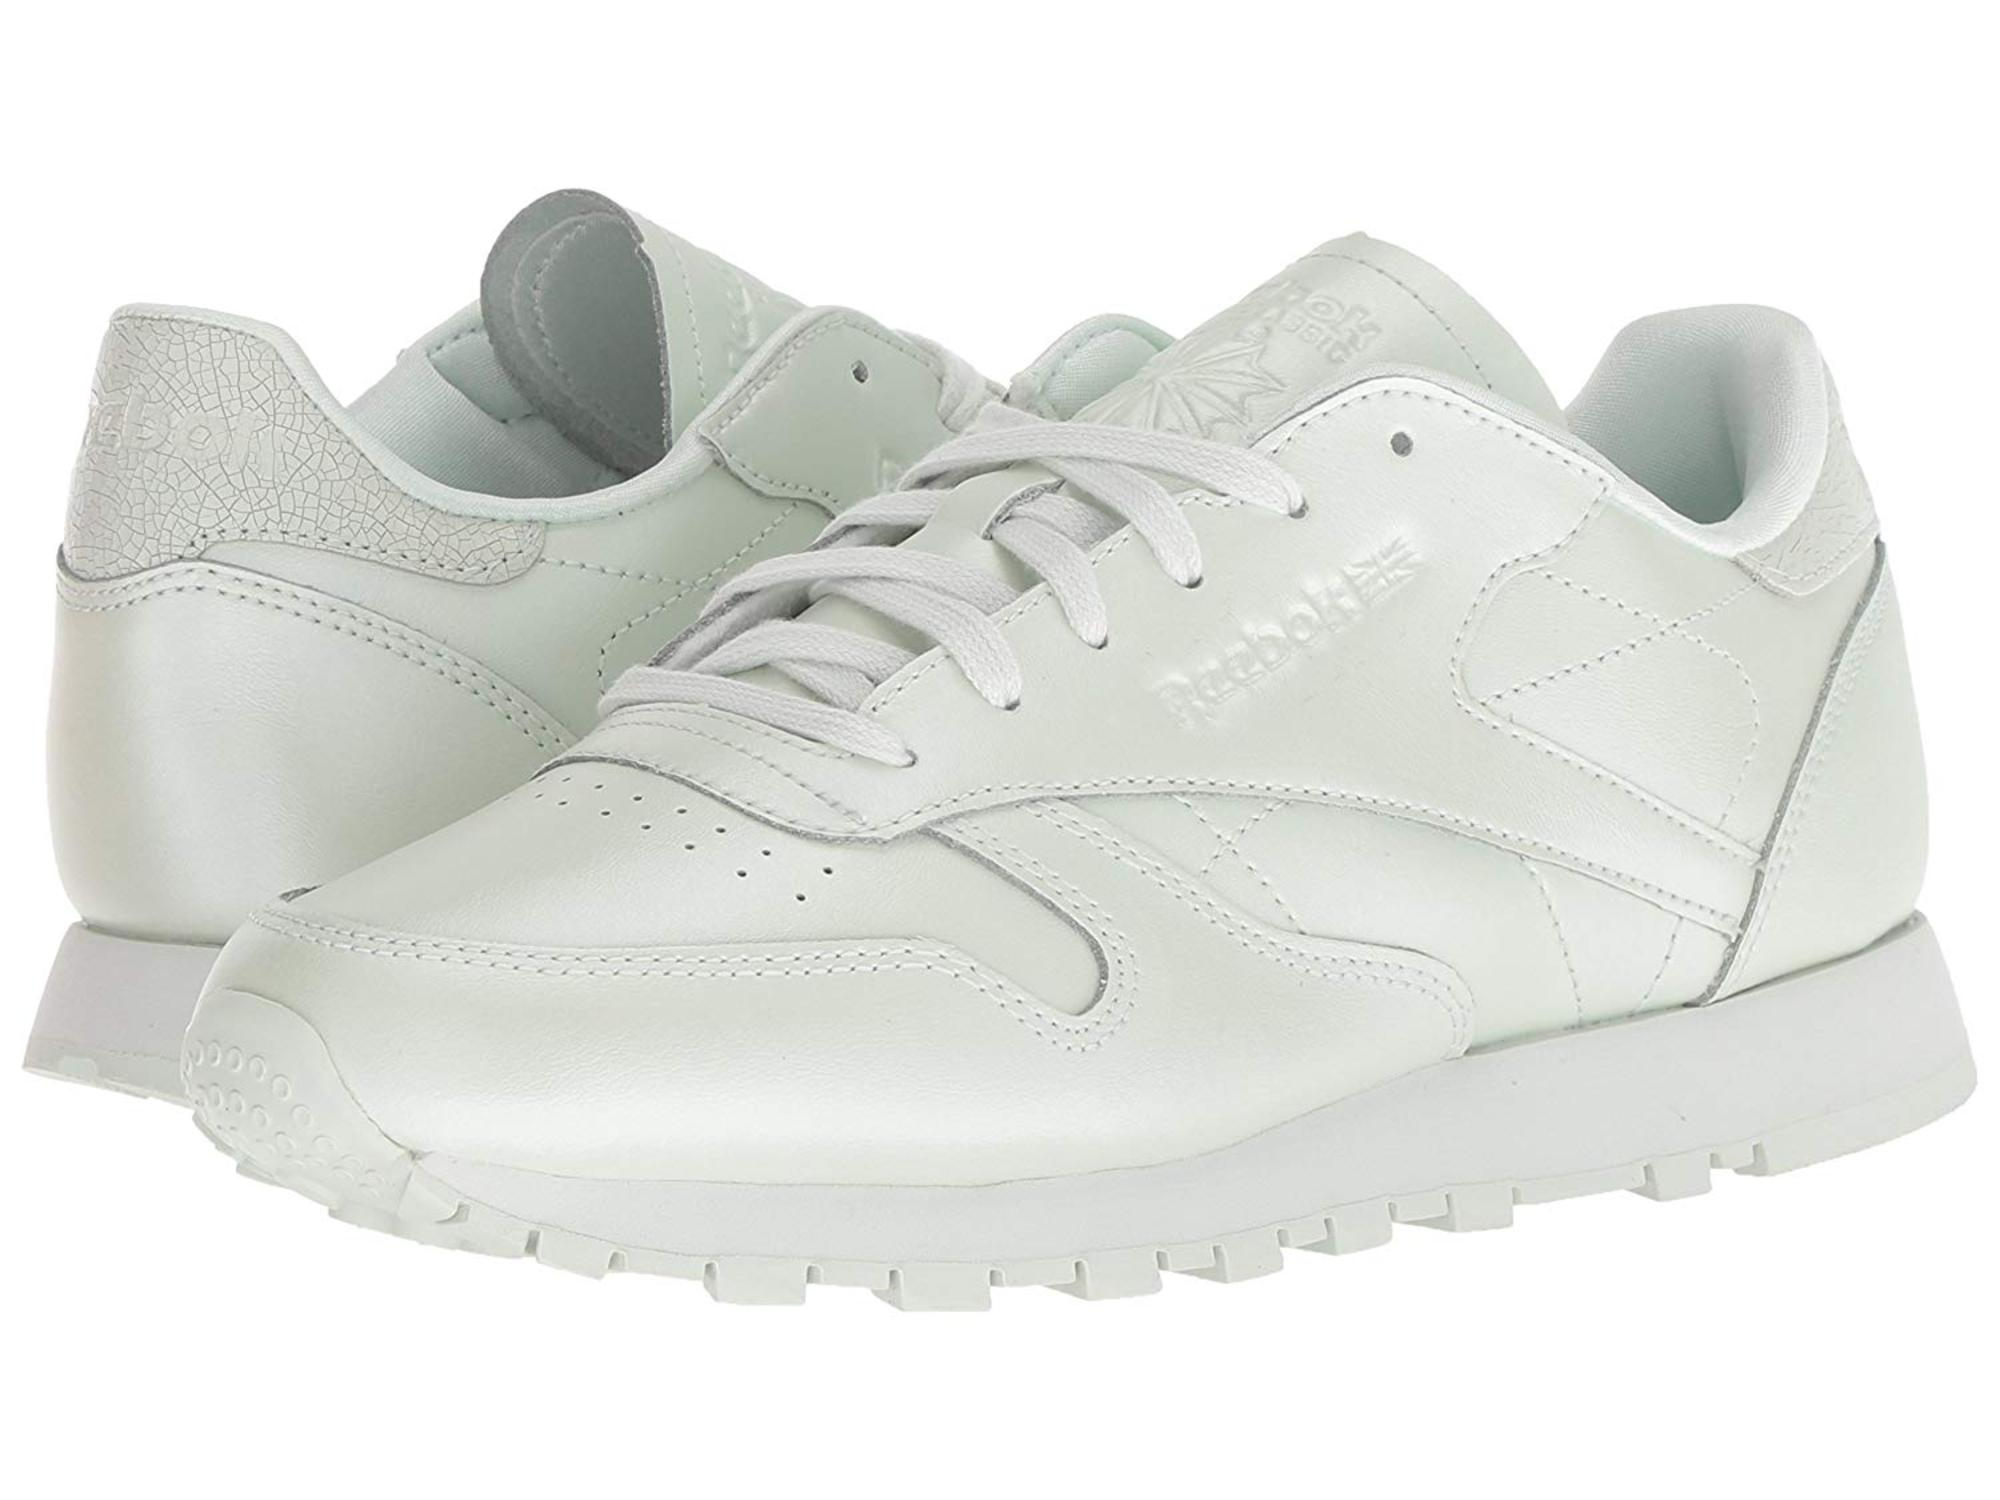 5576f693aa2101 Reebok Womens Classic Leather Low Top Lace Up Running